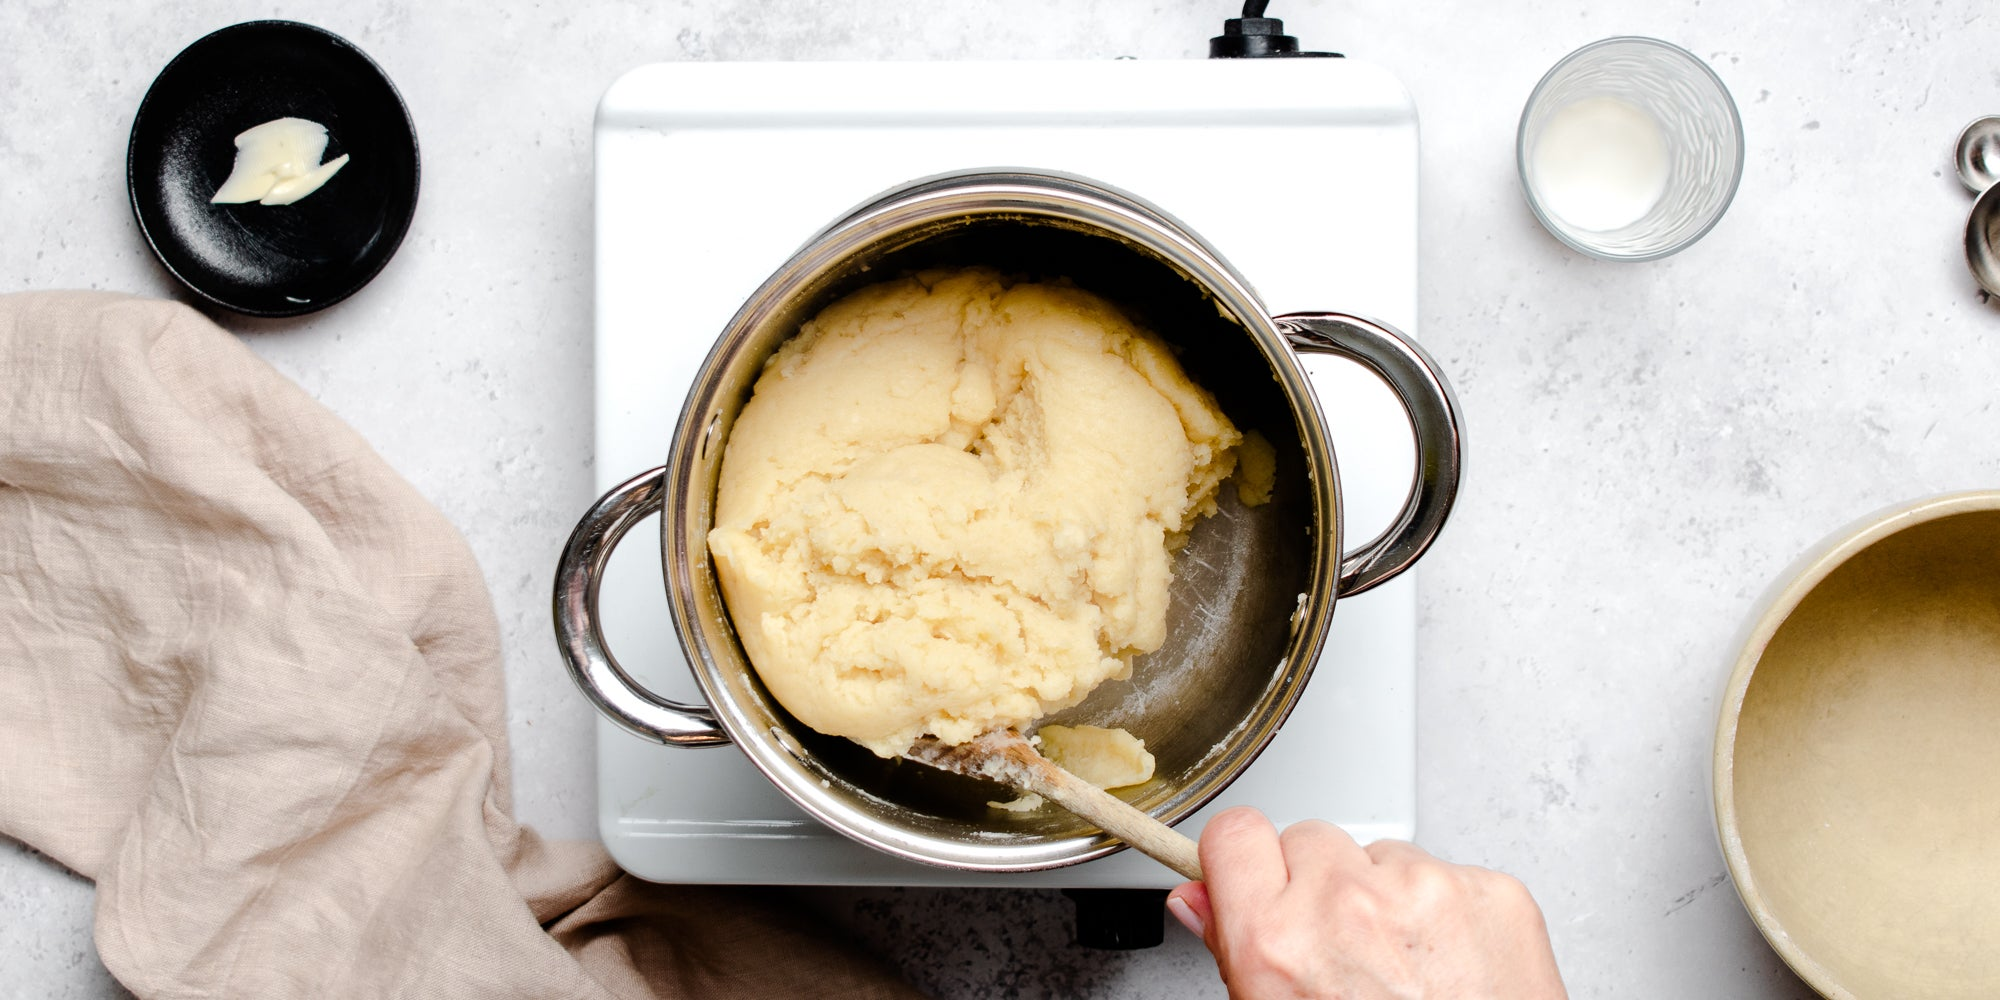 Top view of choux pastry being mixed together in a pan, ready to pipe for Chouxnuts